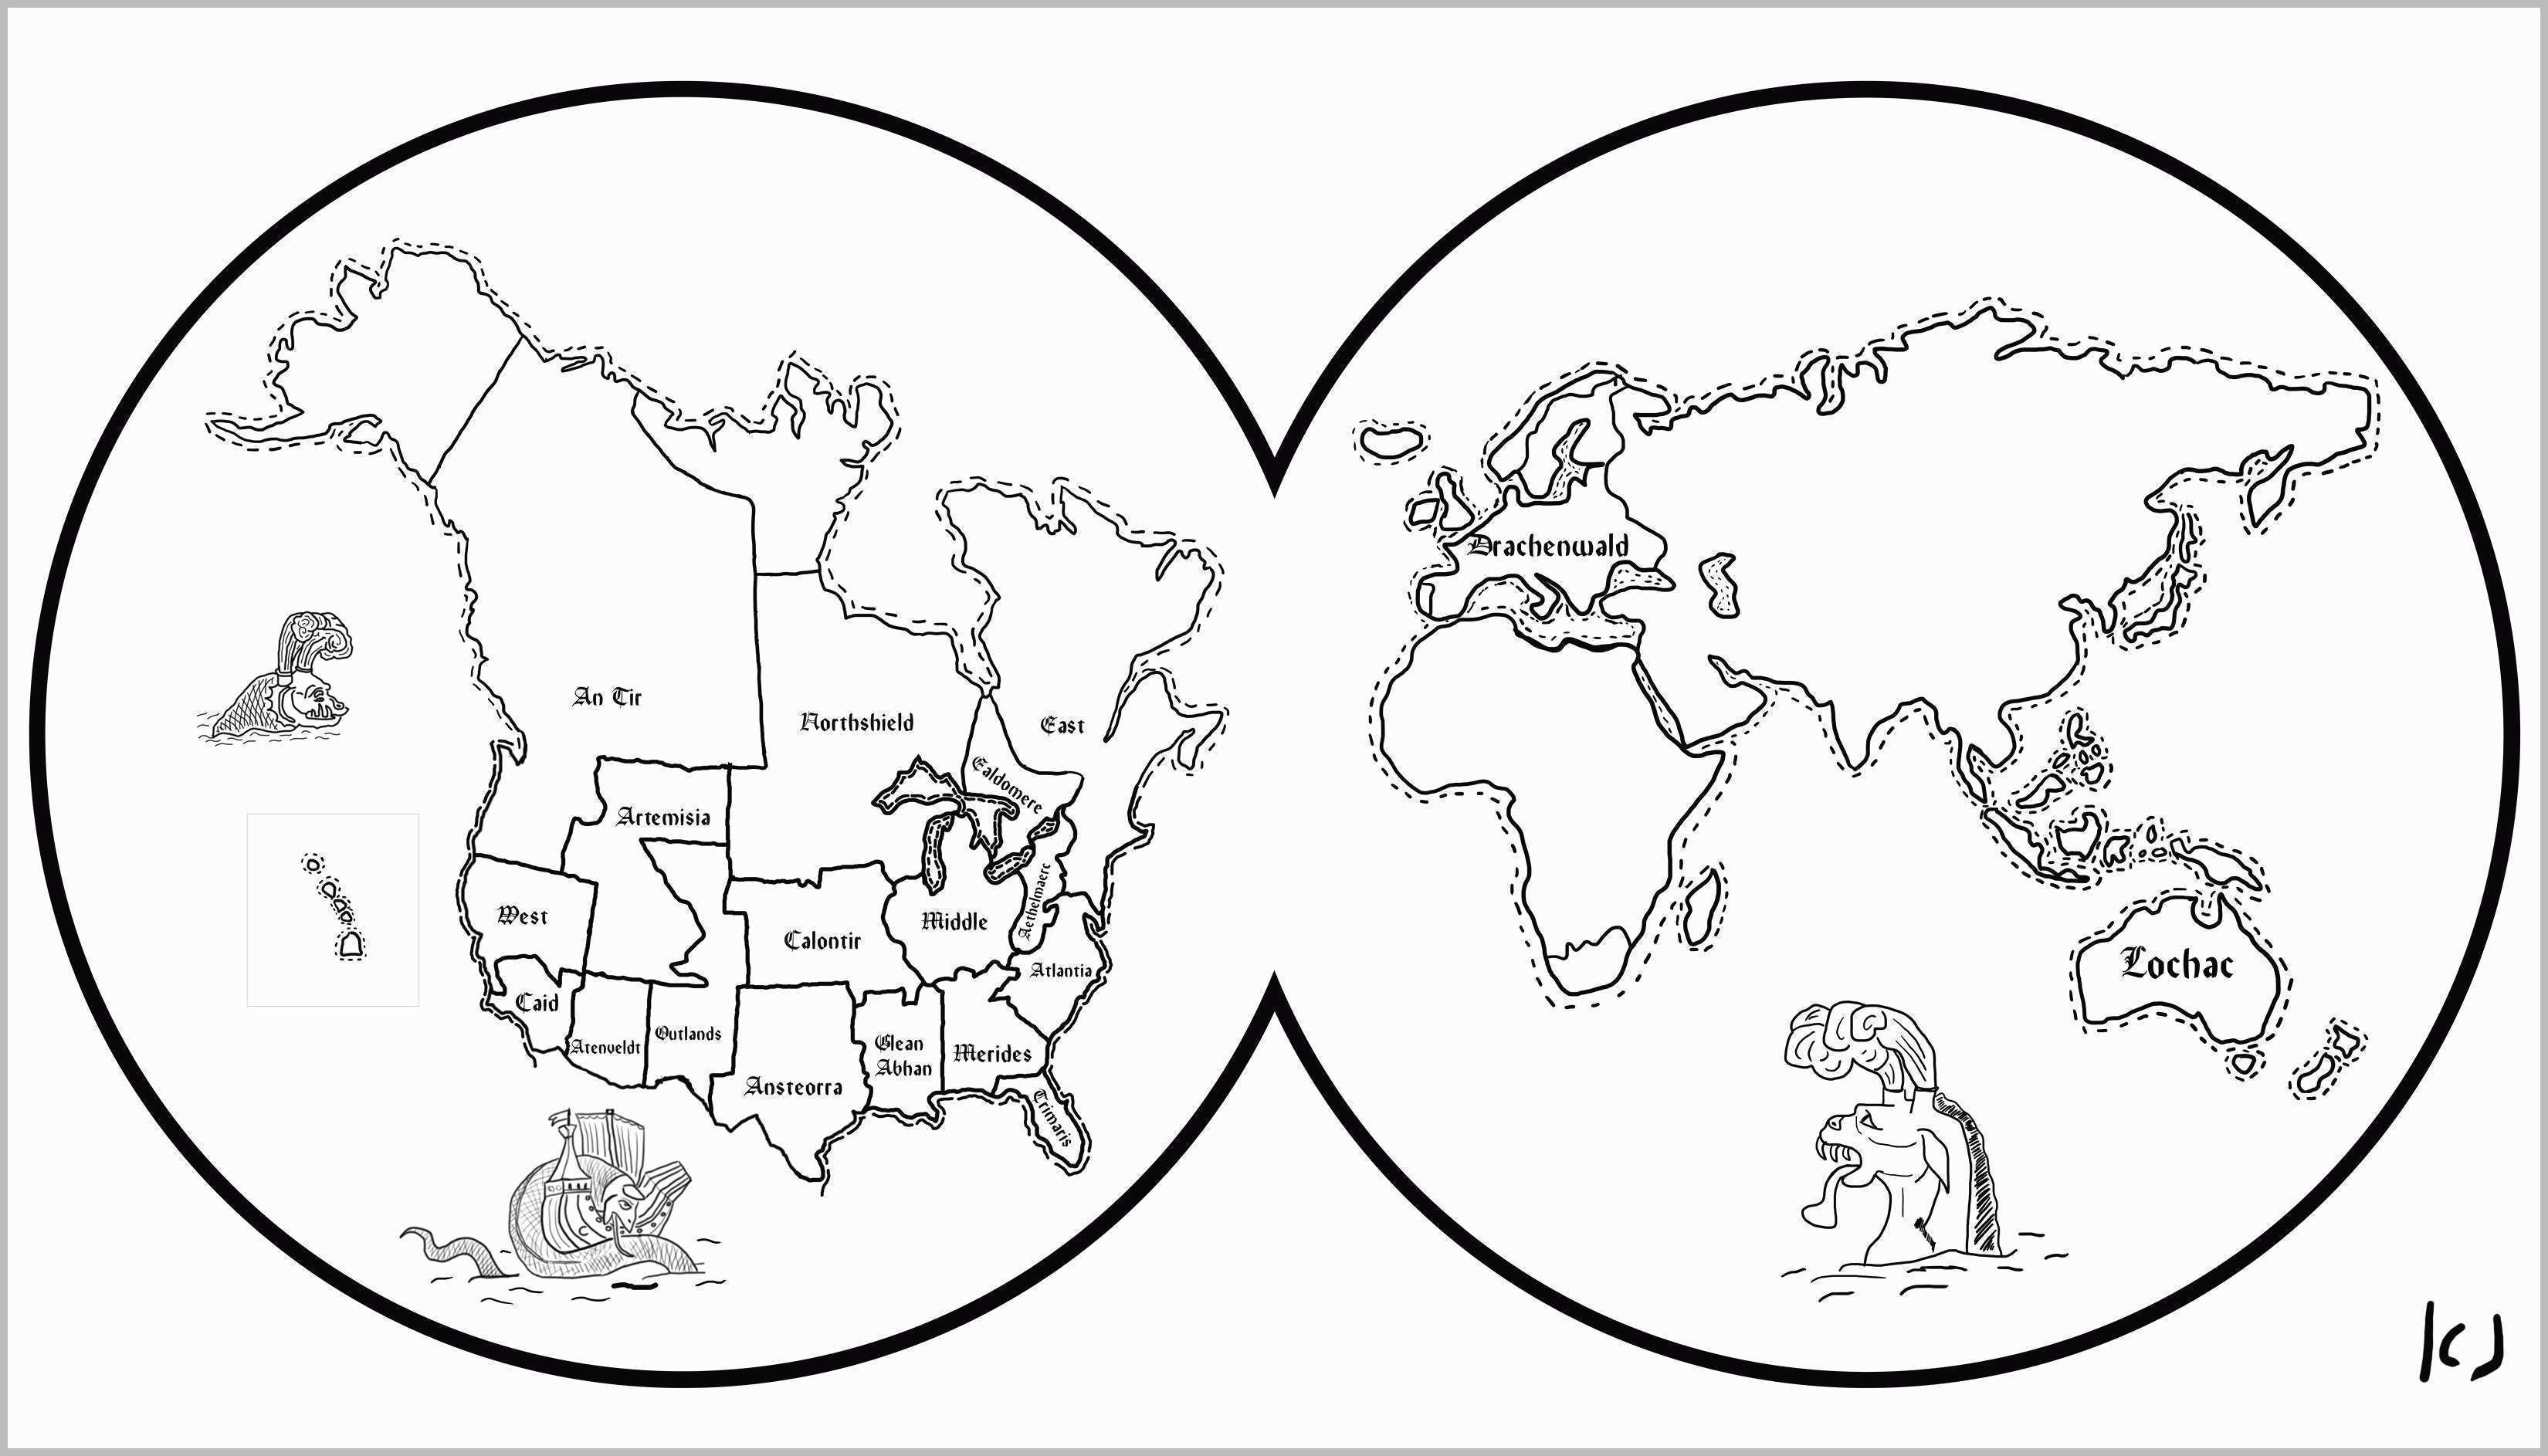 Coloring Pages ~ World Map Printable Color Countries Of The Ks2 New - Coloring World Map Printable